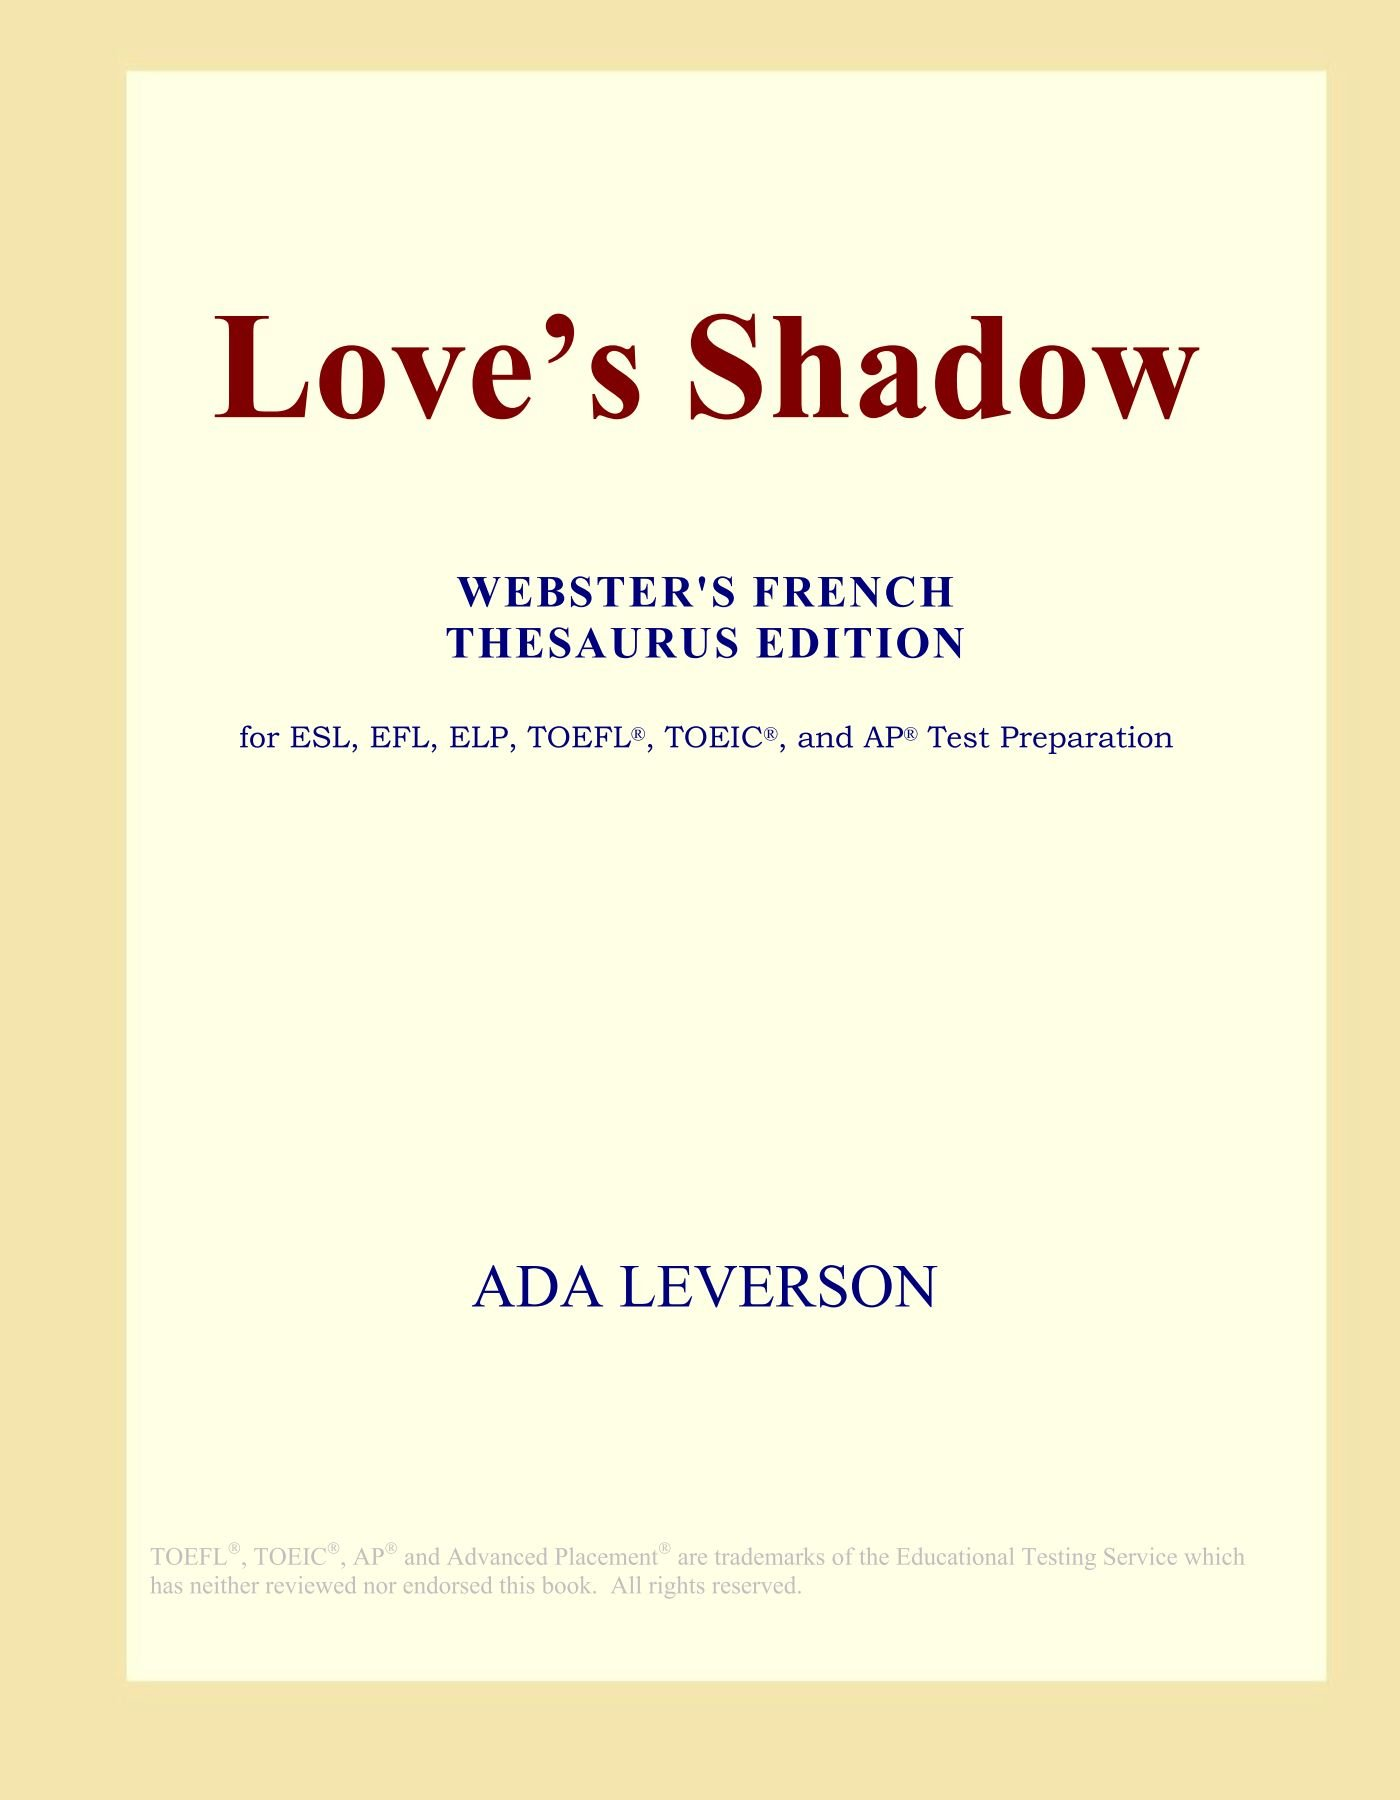 Love's Shadow (Webster's French Thesaurus Edition) PDF